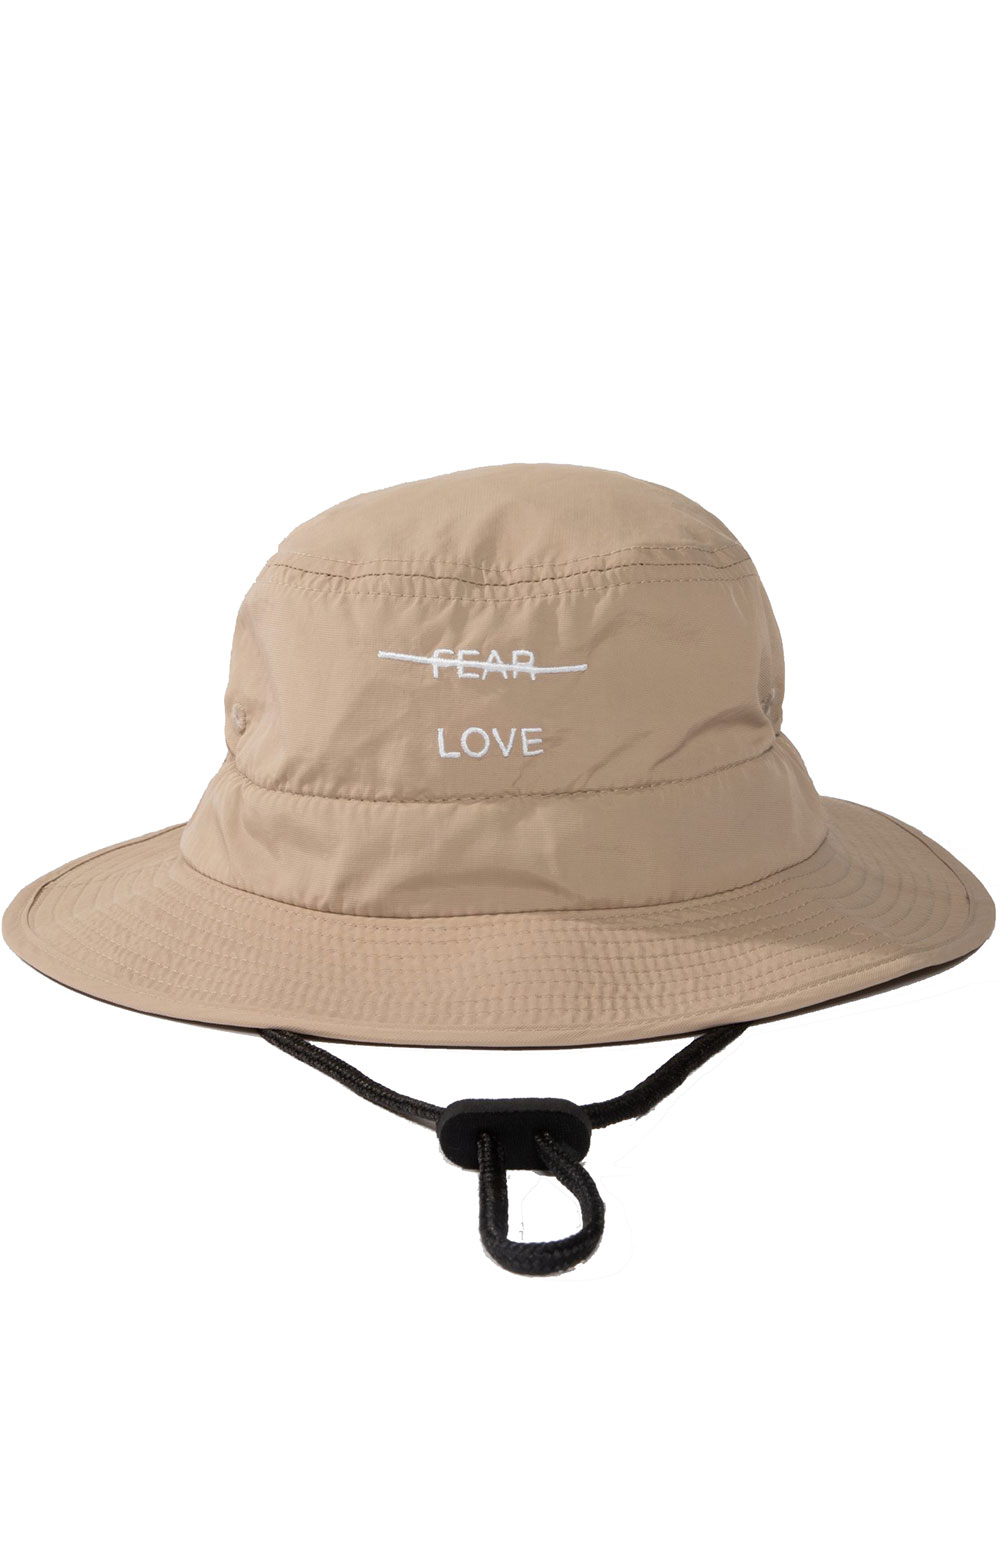 Love Over Fear Guide Hat - Tan